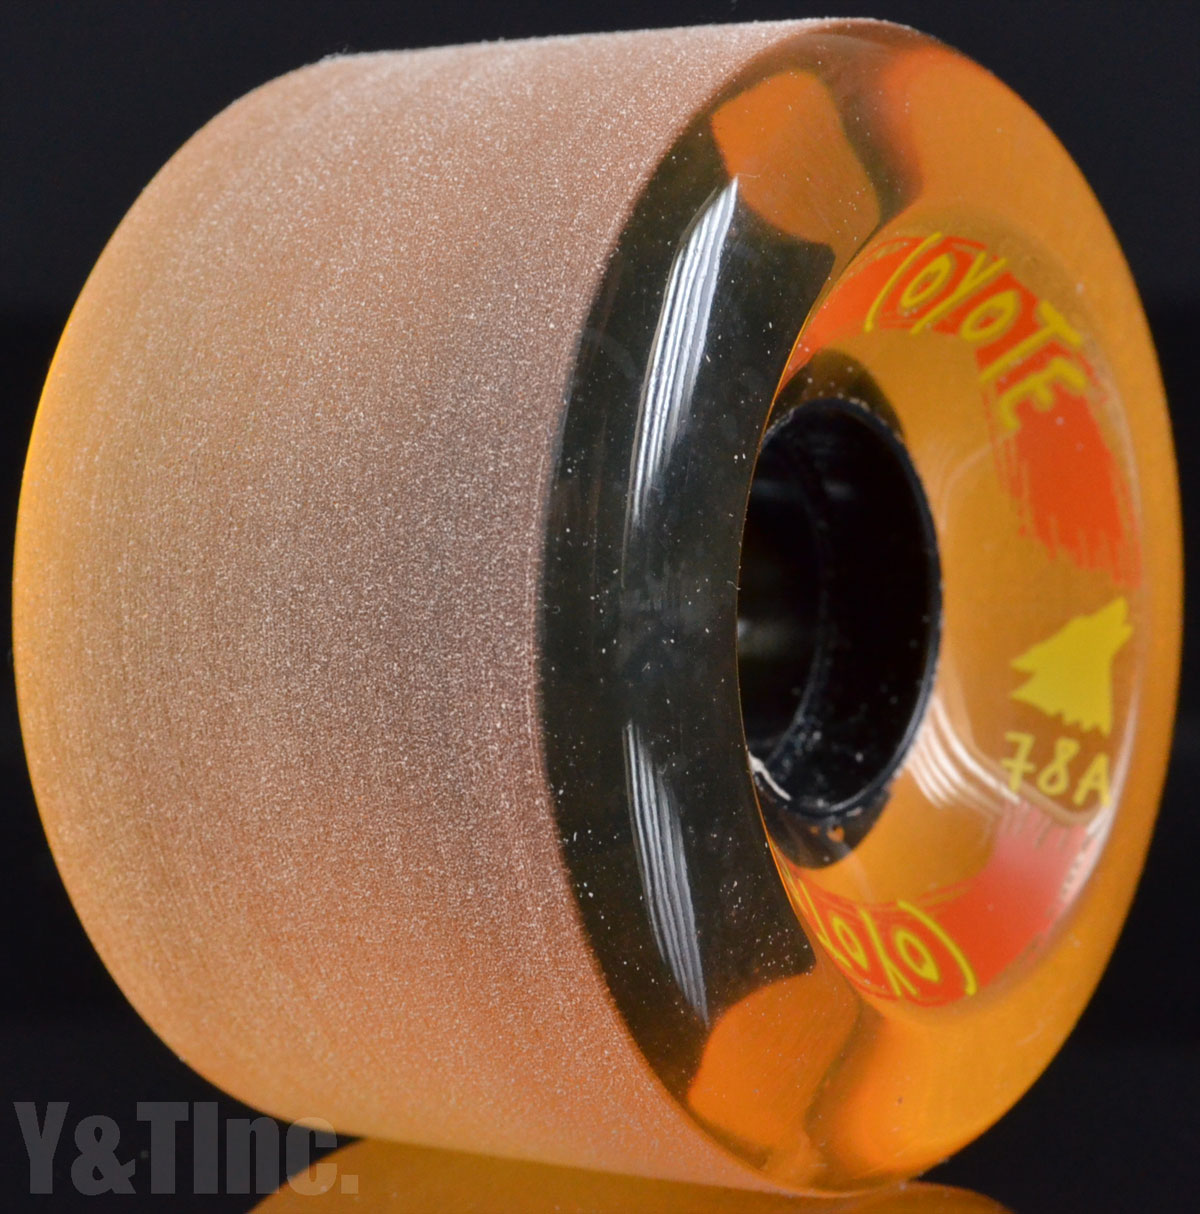 COYOTE 65mm 78a Trans Yellow 2